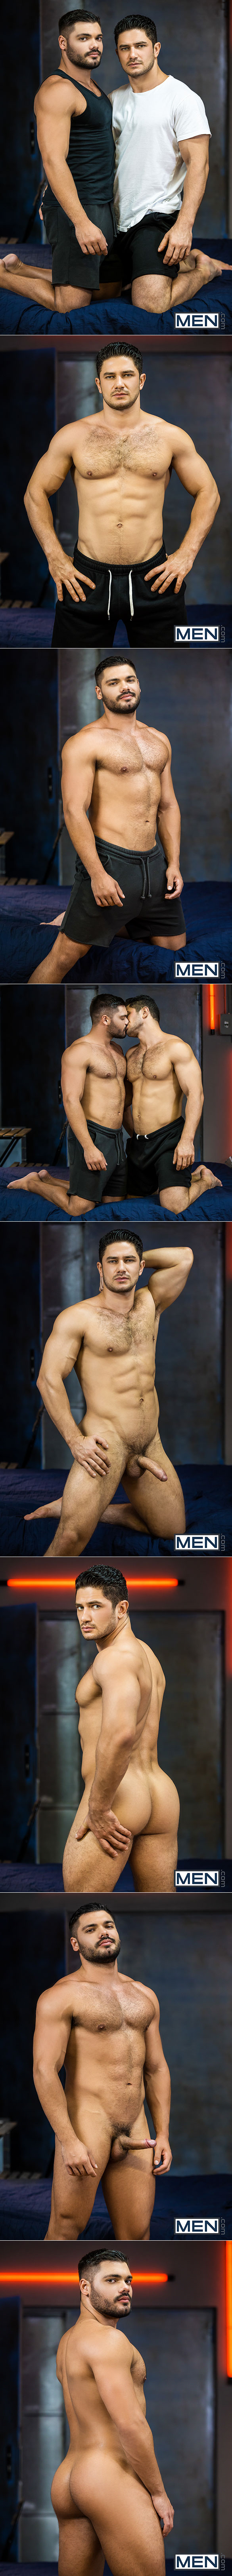 "Men.com: Dato Foland fucks Nicolas Brooks in ""The Boy Is Mine, Part 1"""